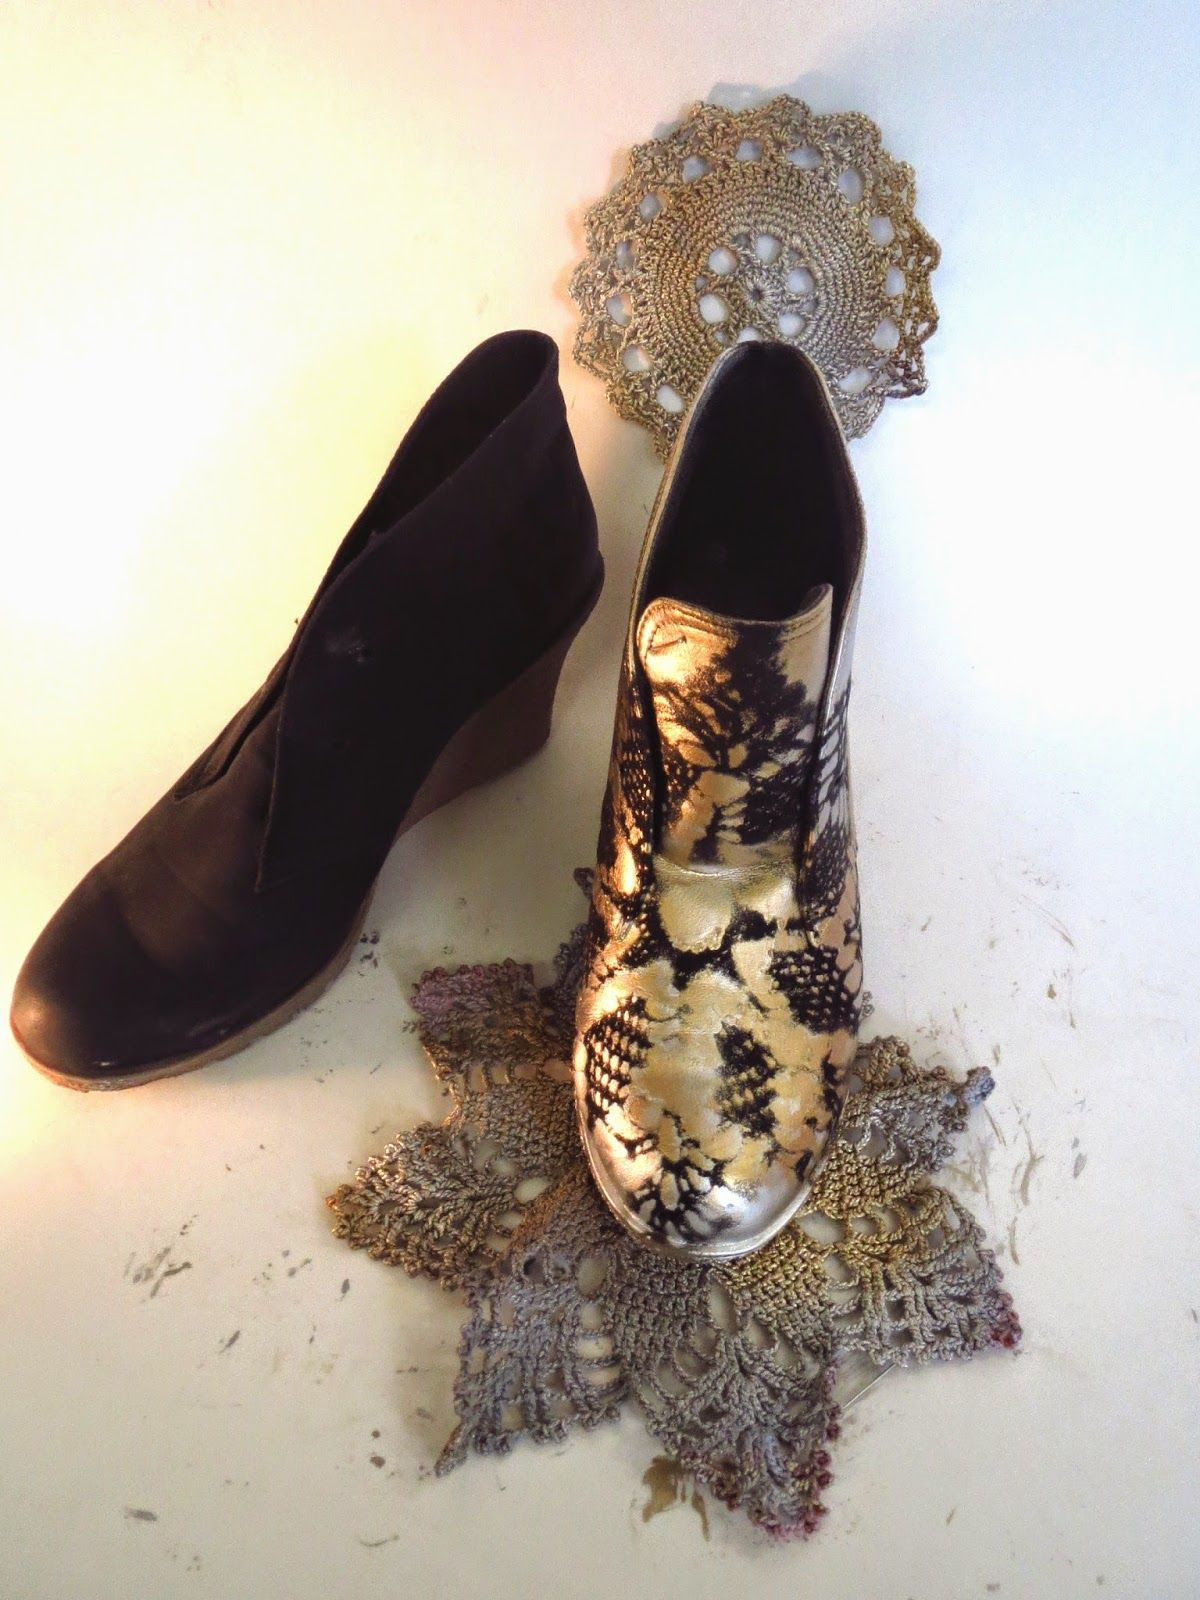 Used doily and spraypaint to upcycle boots! genius